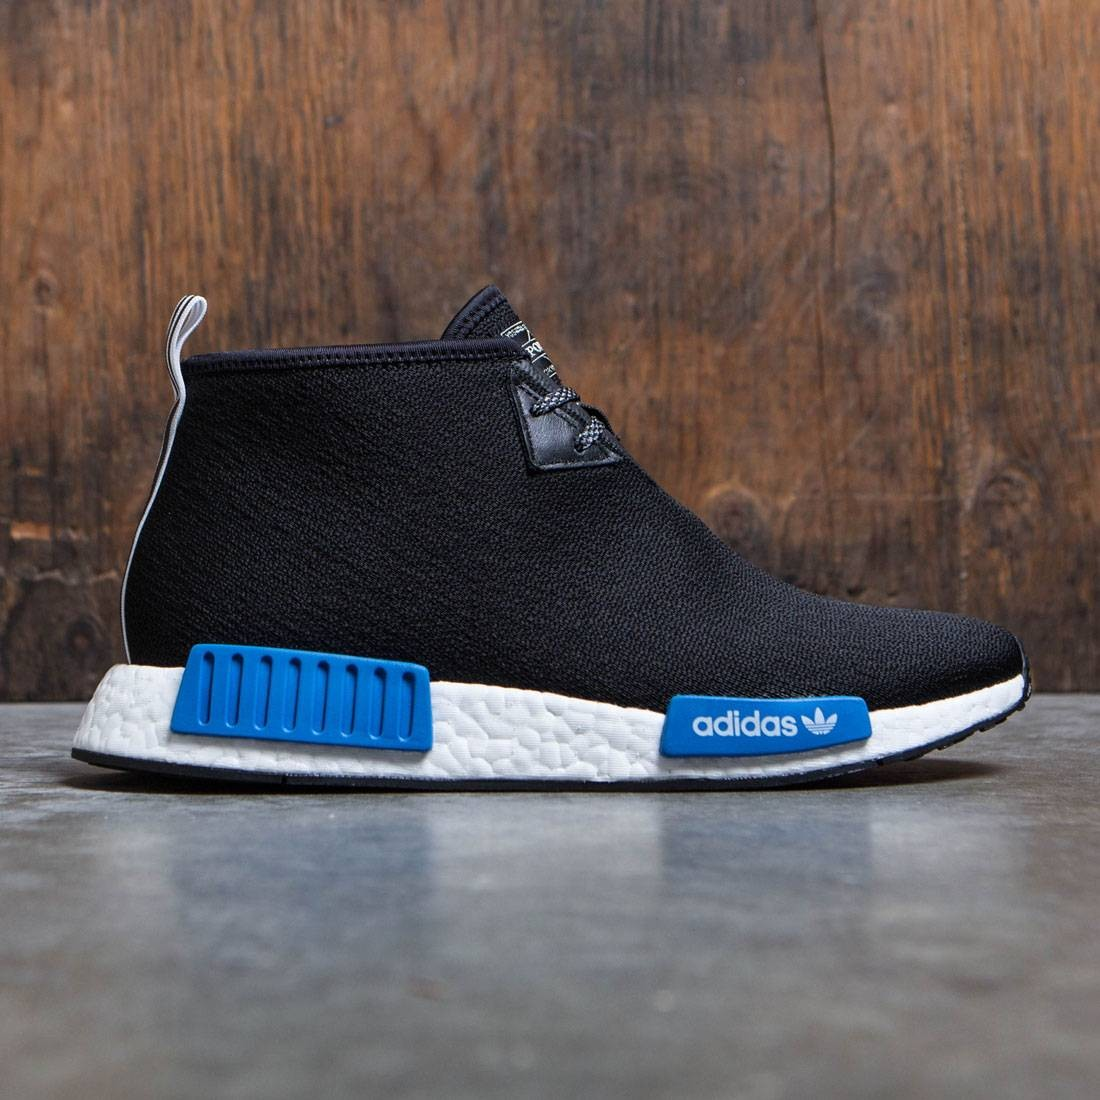 Buy cheap Online adidas nmd c1 trail,Shop Up To OFF38% Shoes